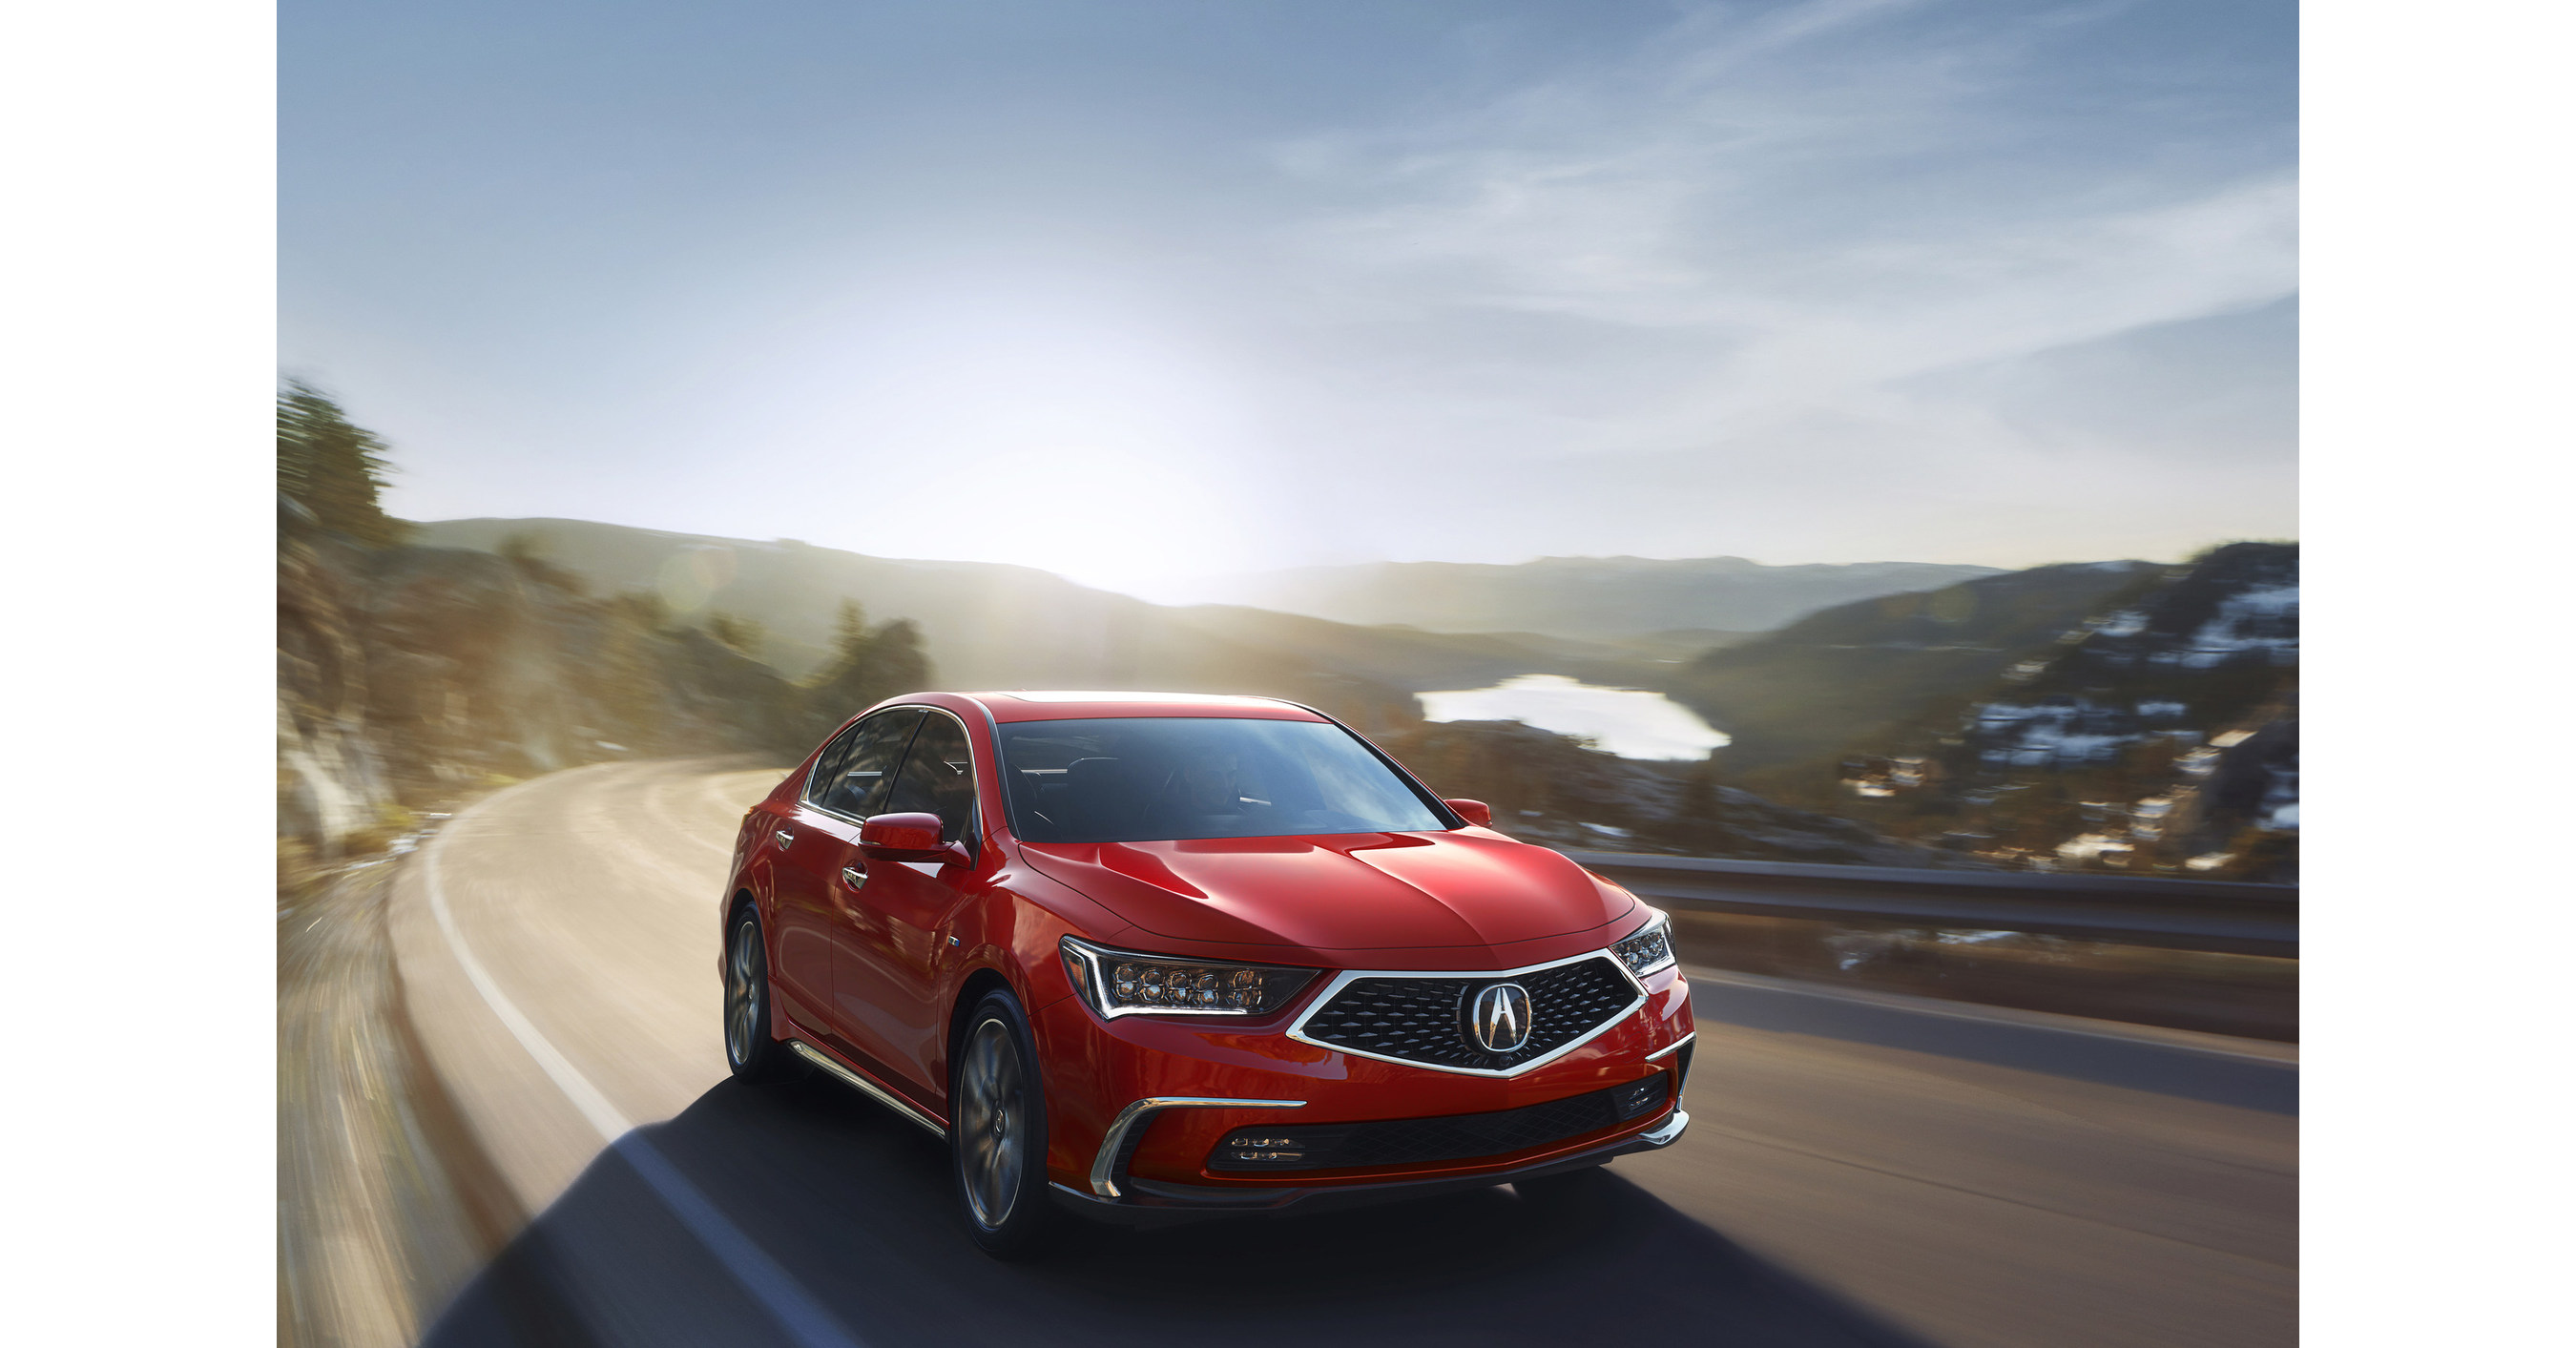 Acura to unveil redesigned 2018 rlx and new arx 05 prototype race car at monterey automotive week